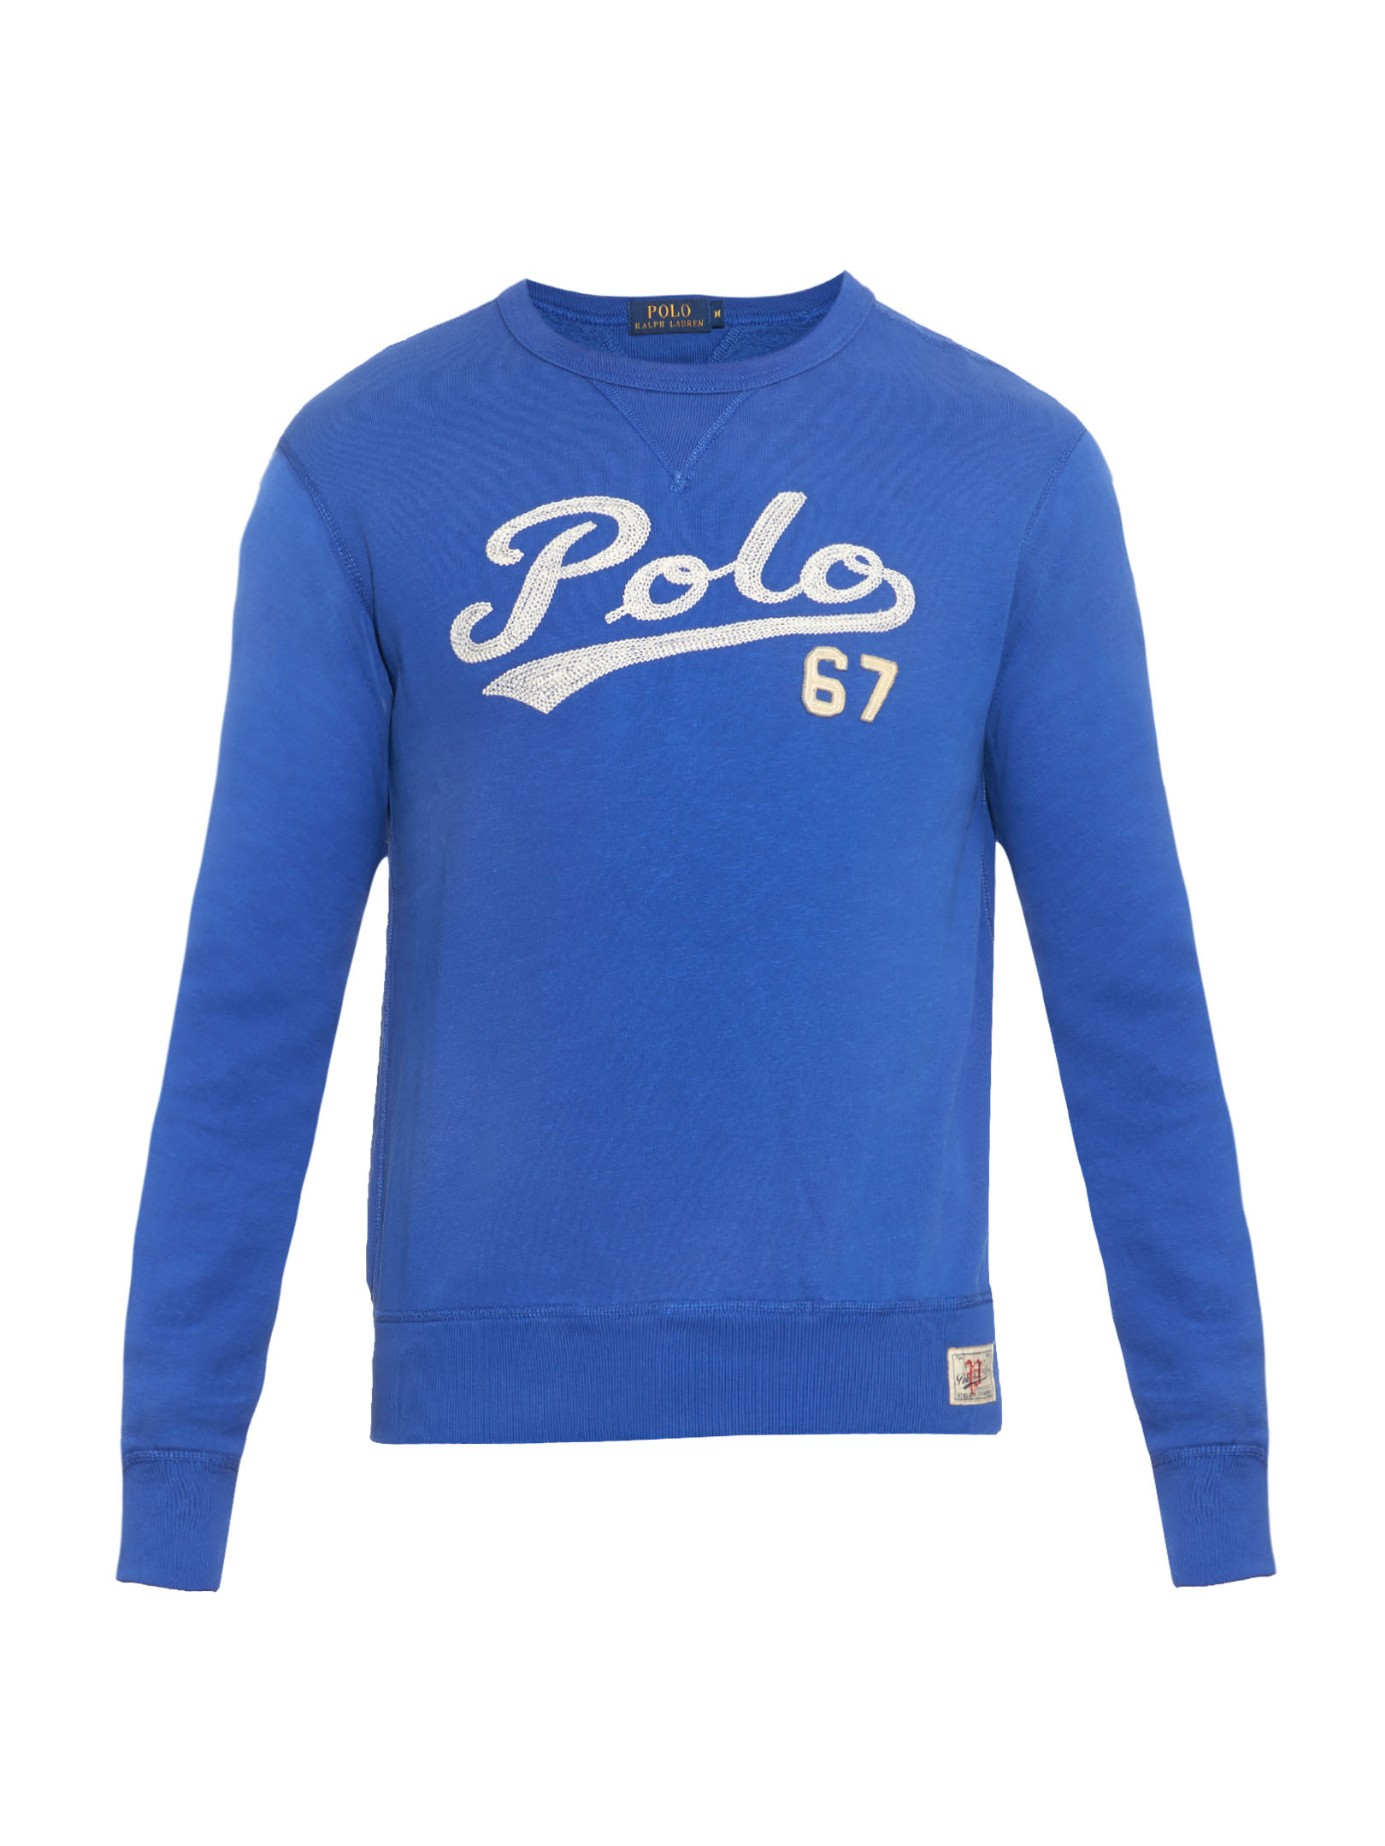 polo ralph lauren logo embroidered jersey sweatshirt in blue for men lyst. Black Bedroom Furniture Sets. Home Design Ideas